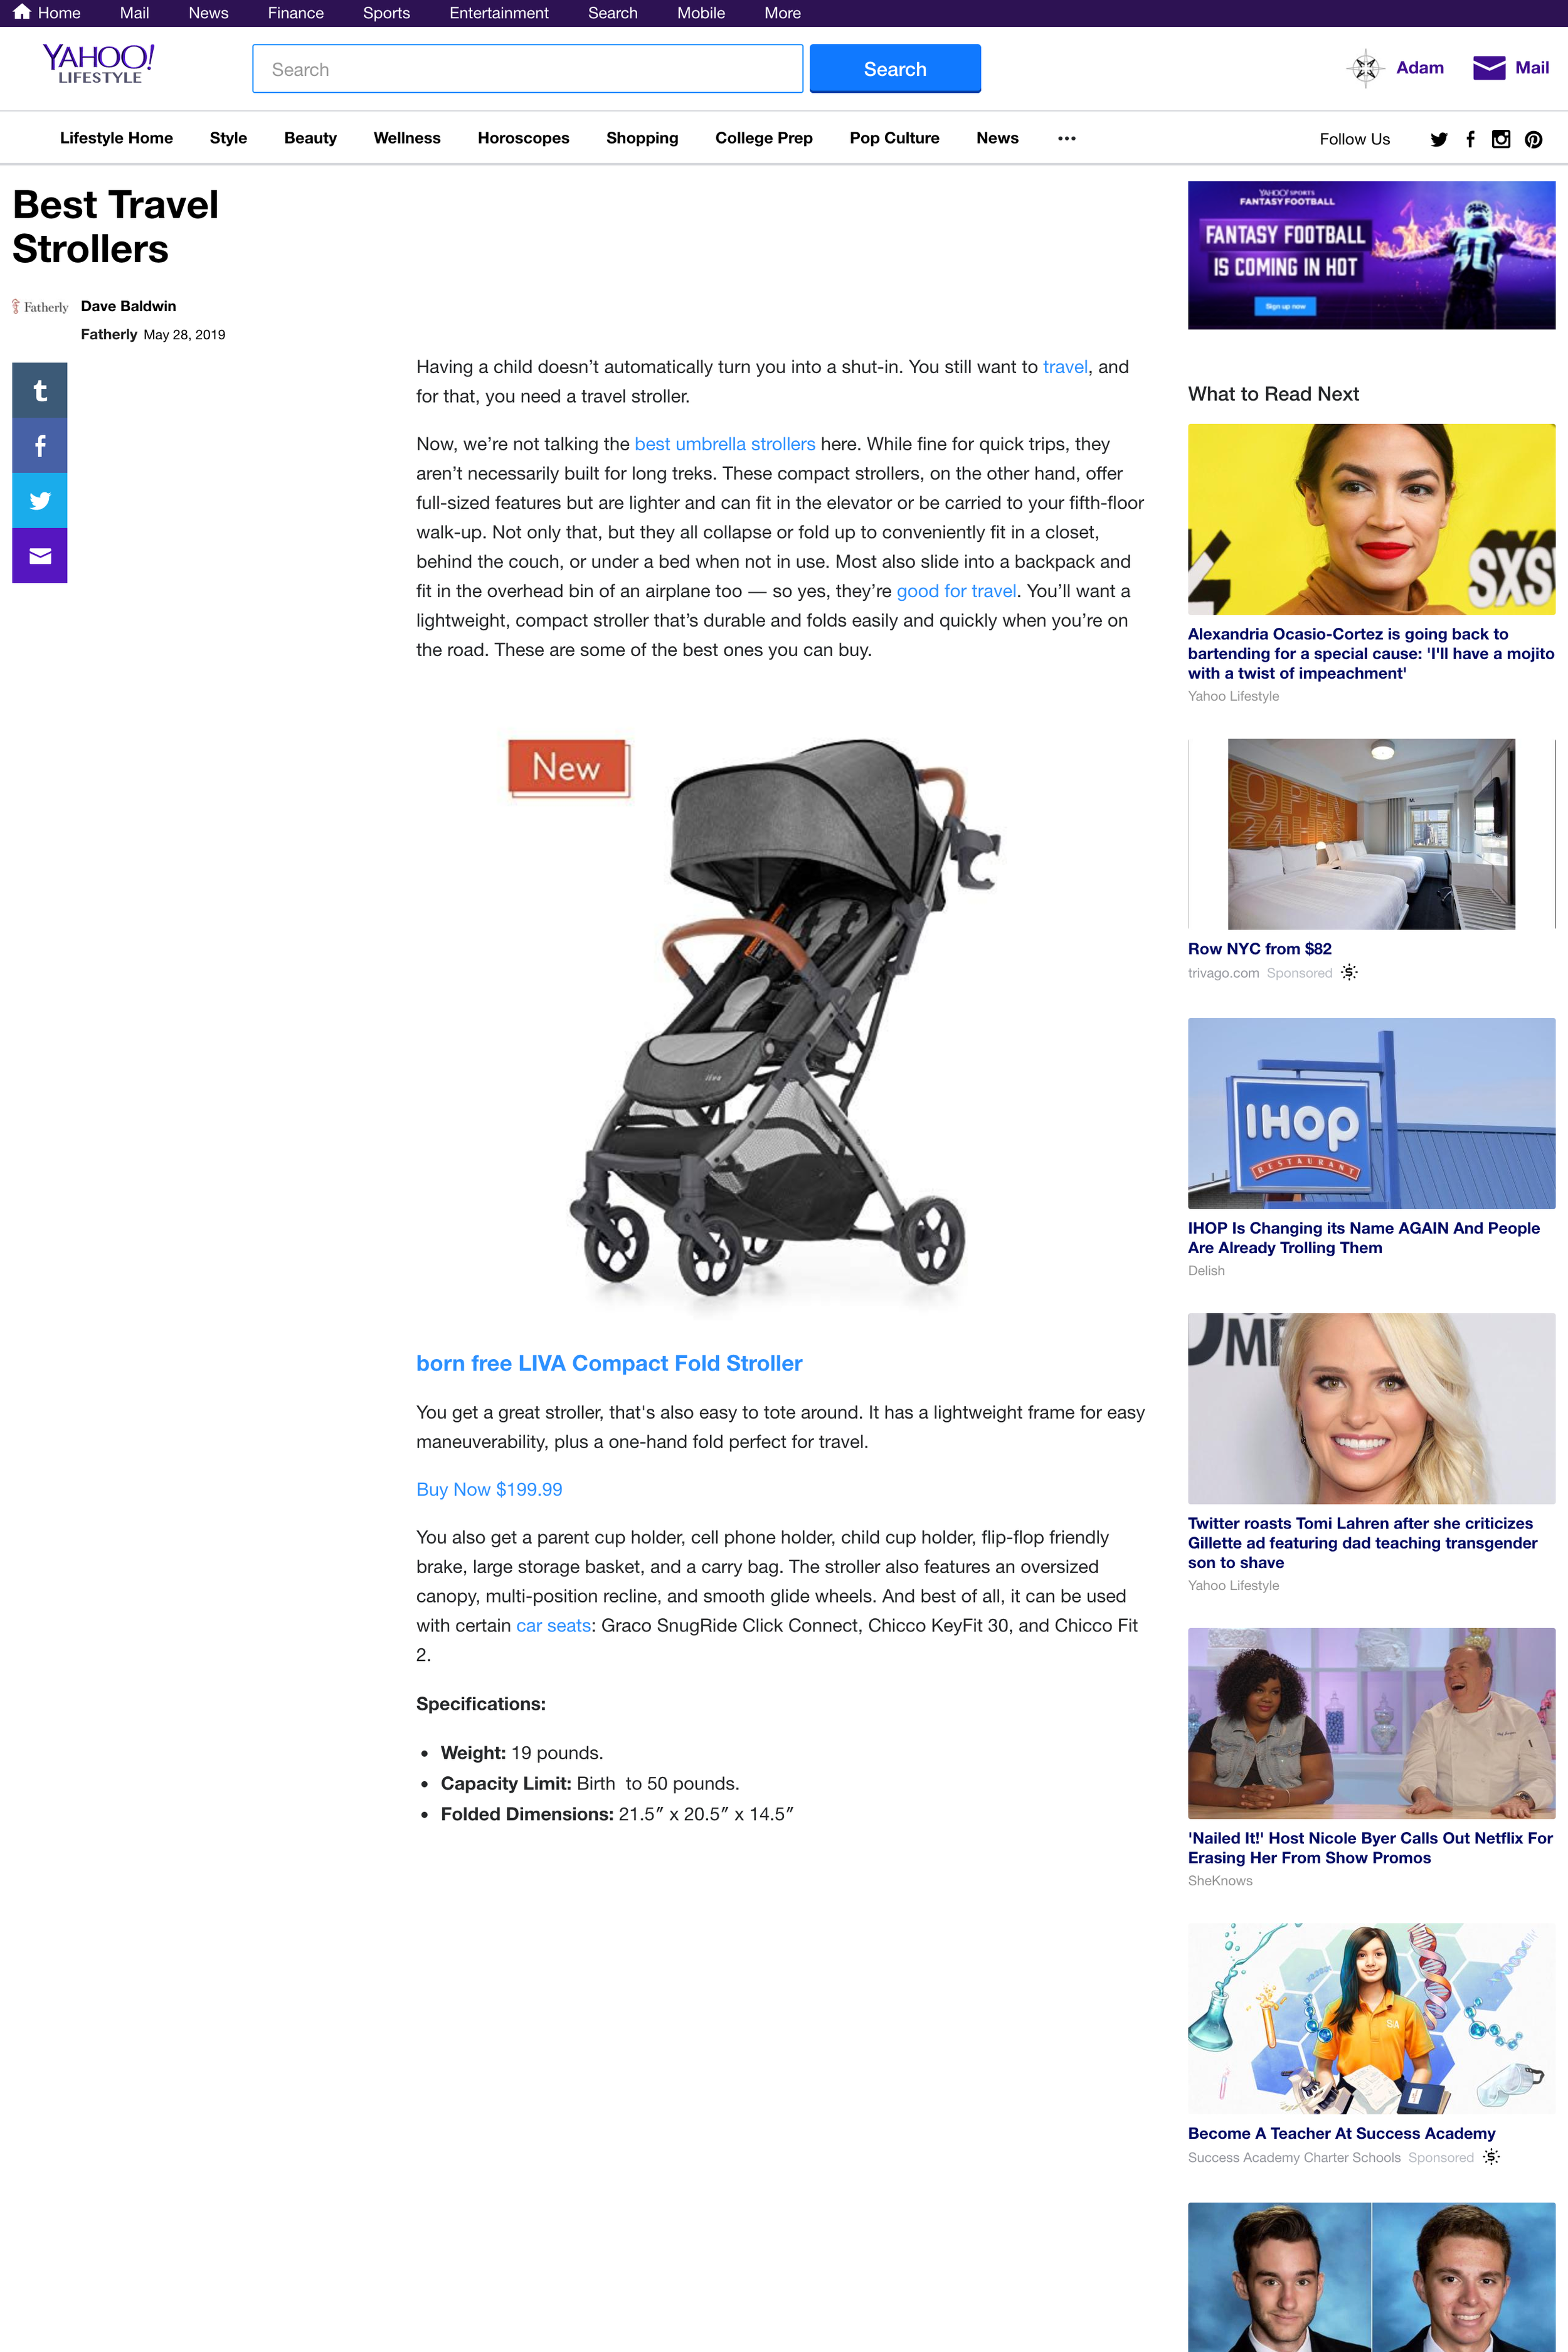 2019.05.28_Fatherly syndicated to Yahoo Lifestyle_born free liva_cropped 2x3.png